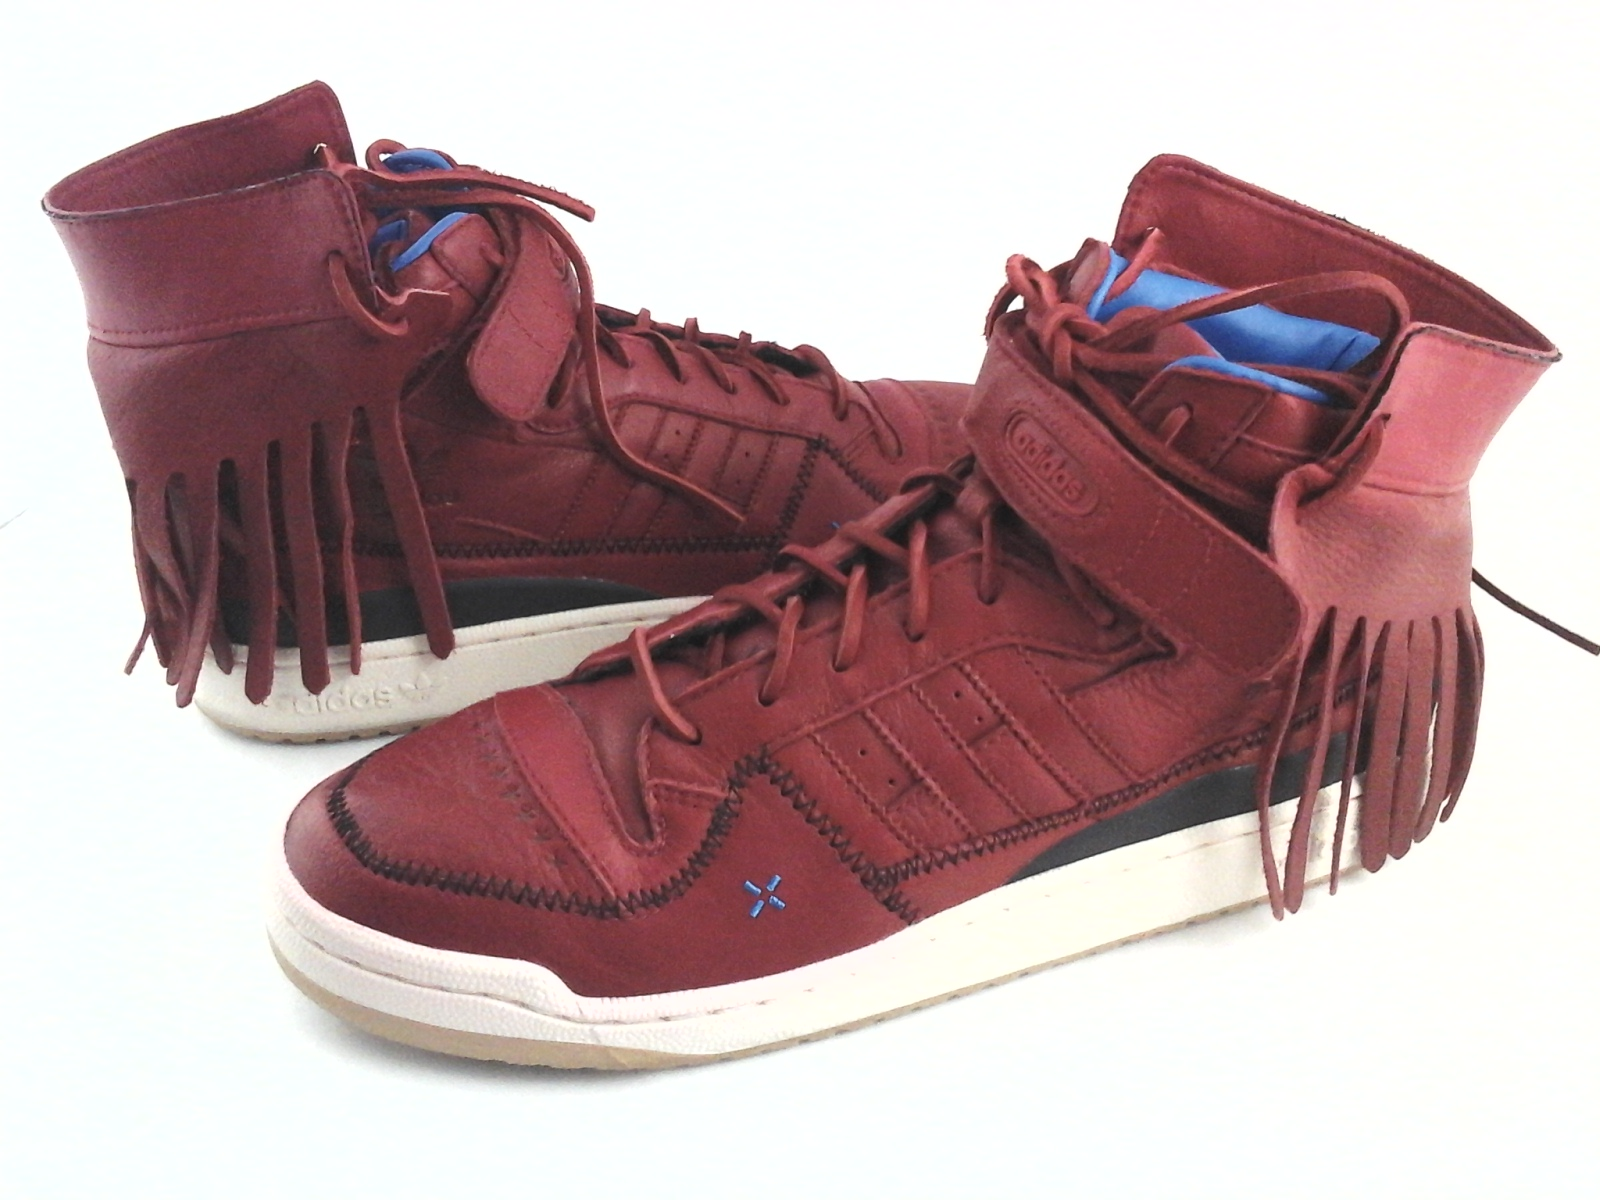 new concept 96ec6 db2eb ADIDAS Shoes Mid High Leather Fringe Red Sneakers G48896 Men s US 11 EU 45  1 3